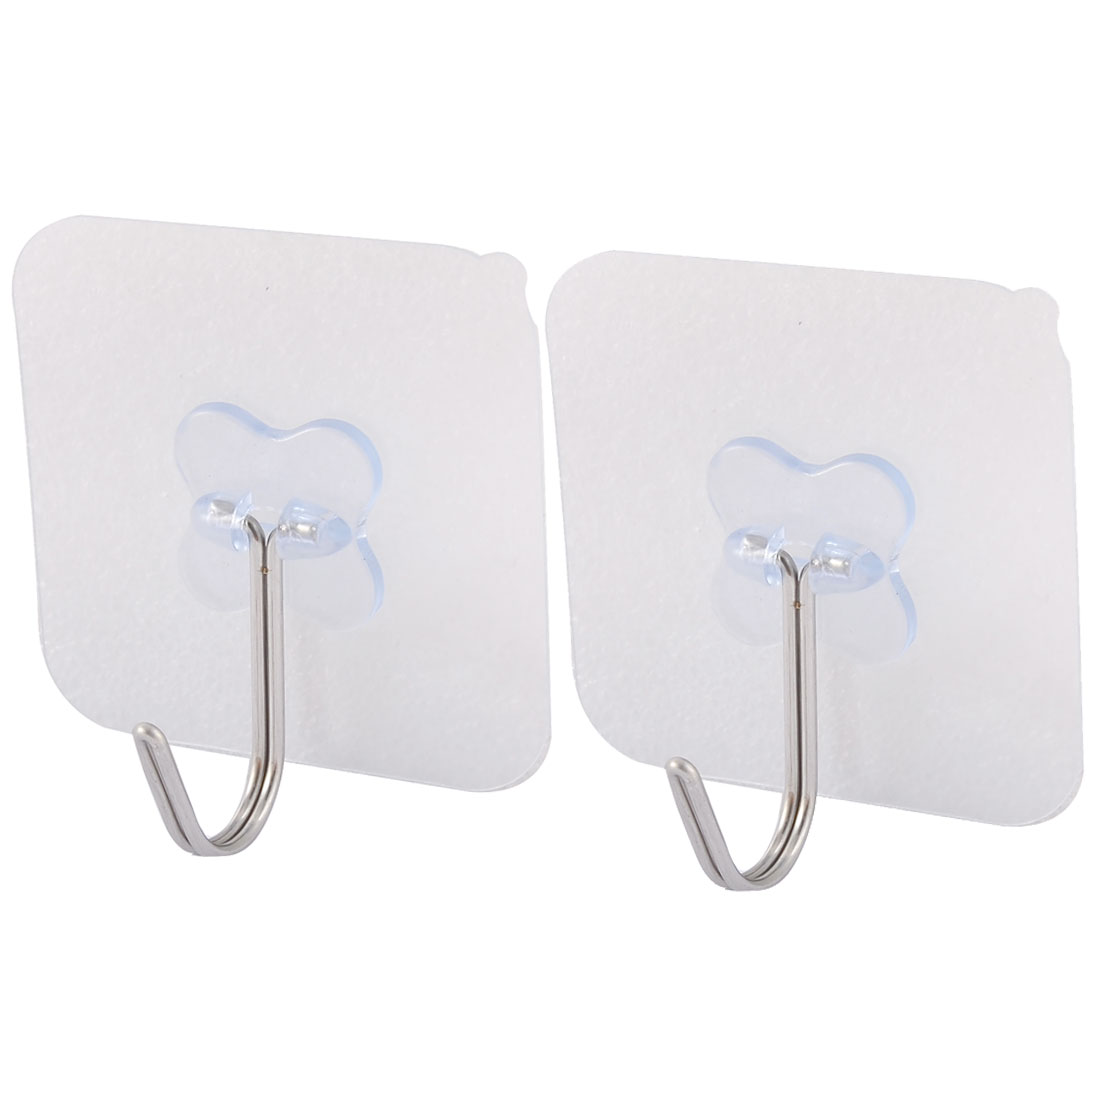 Wall Door No Scratch Towel Clothes Hanger Adhesive Seamless Hook Clear Blue 2pcs